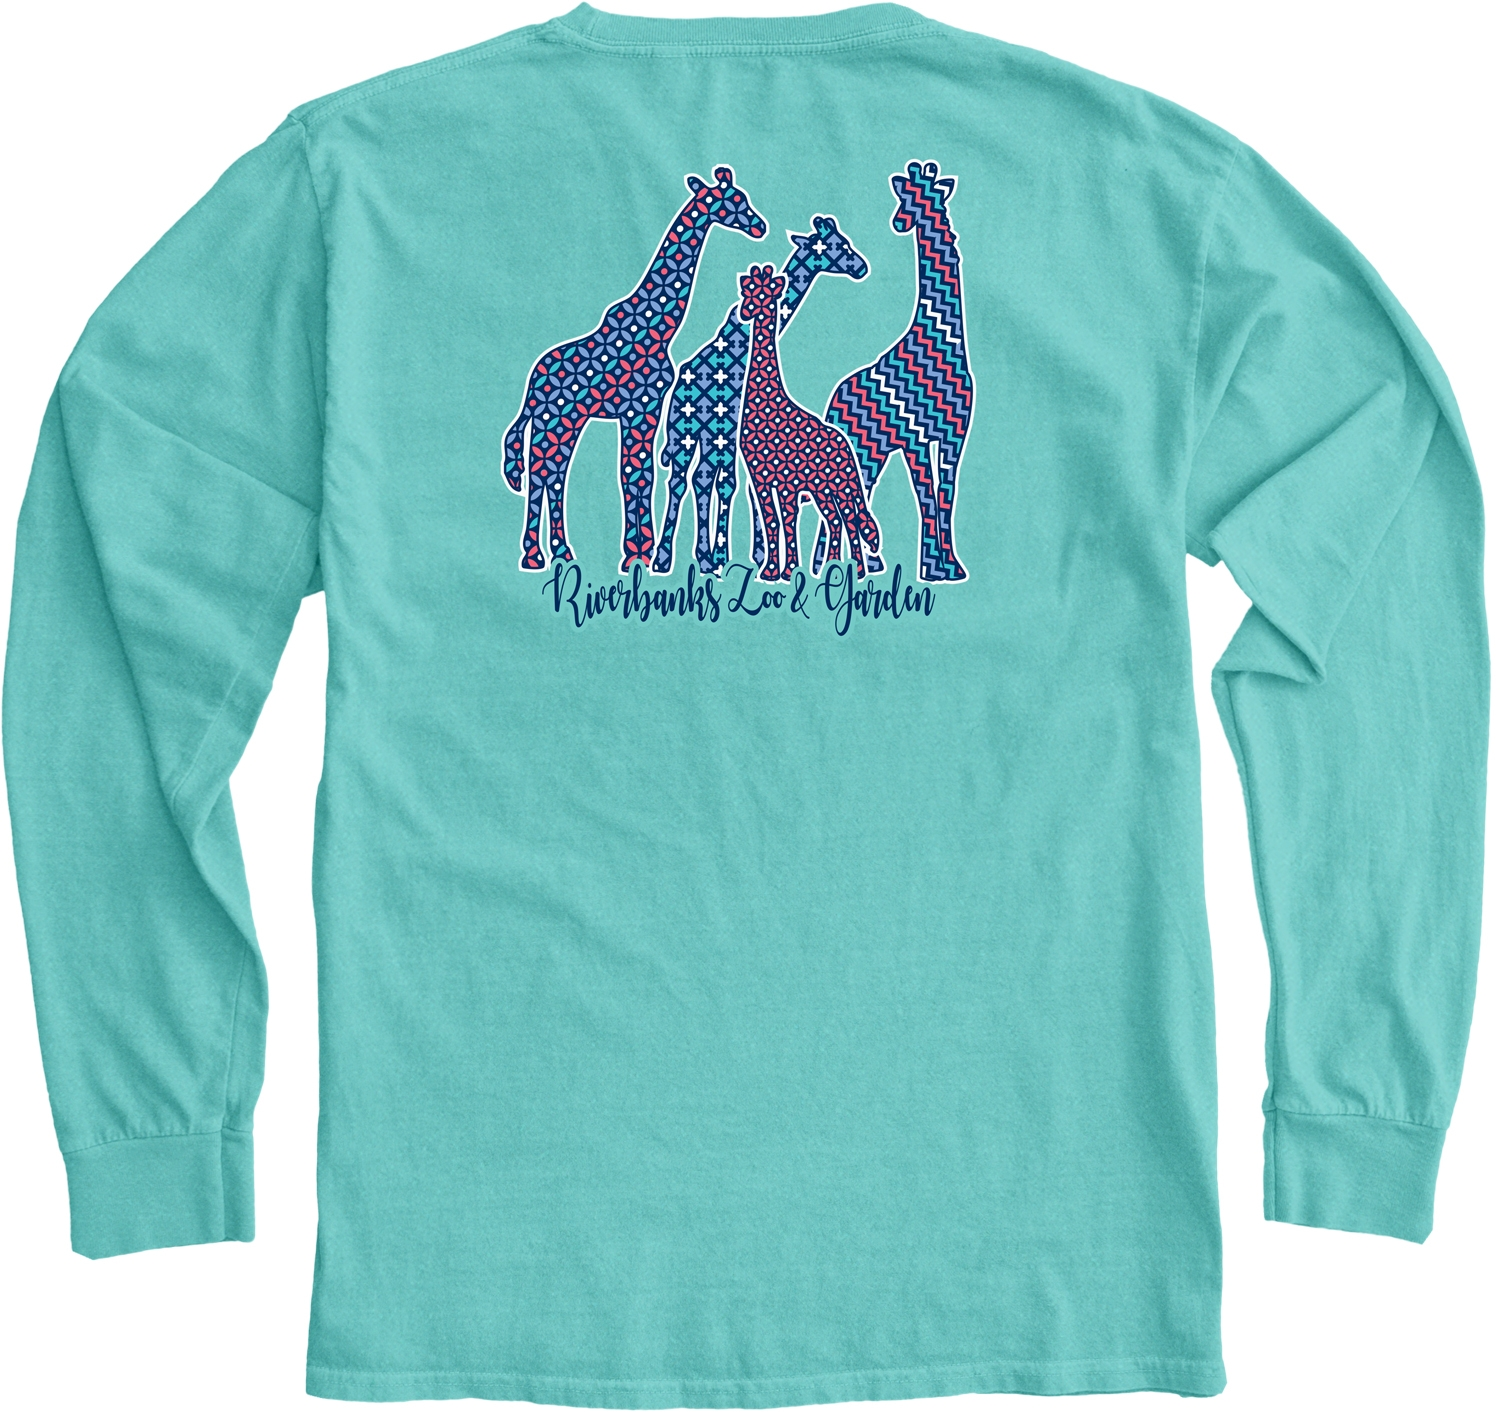 LADIES LONG SLEEVE PATTERNED GIRAFFES TEE